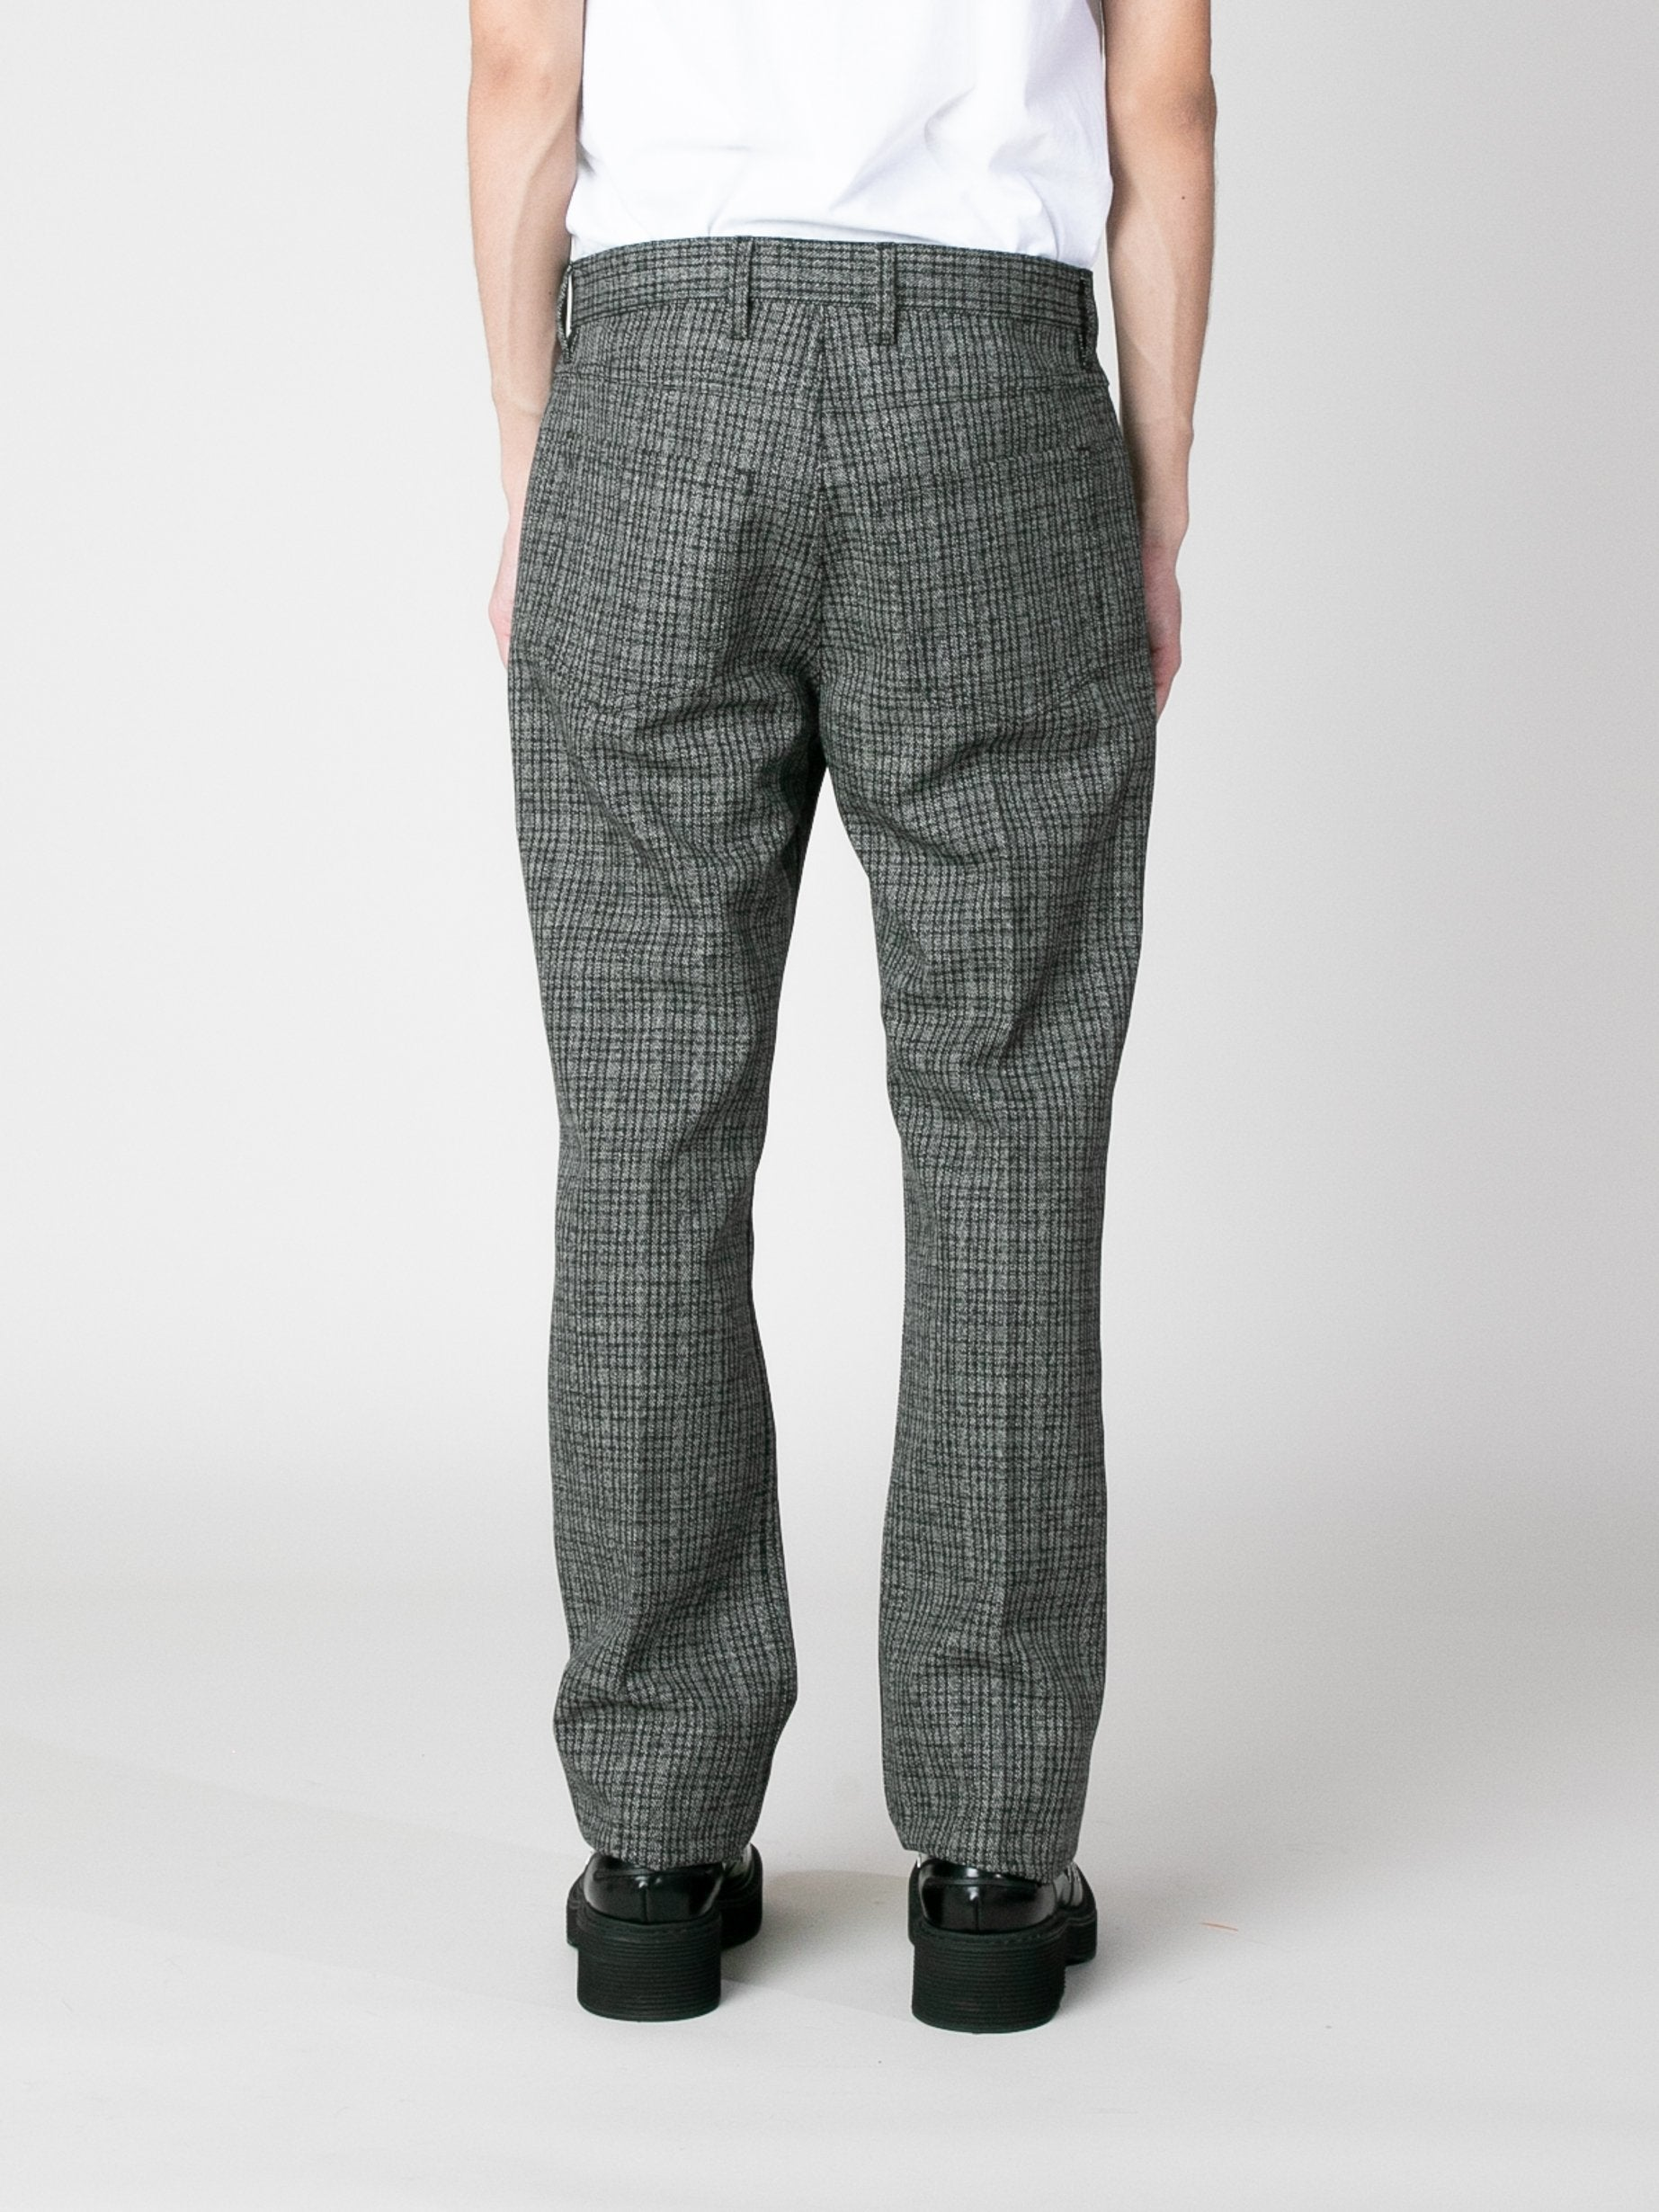 Charcoal Woven Trousers 6